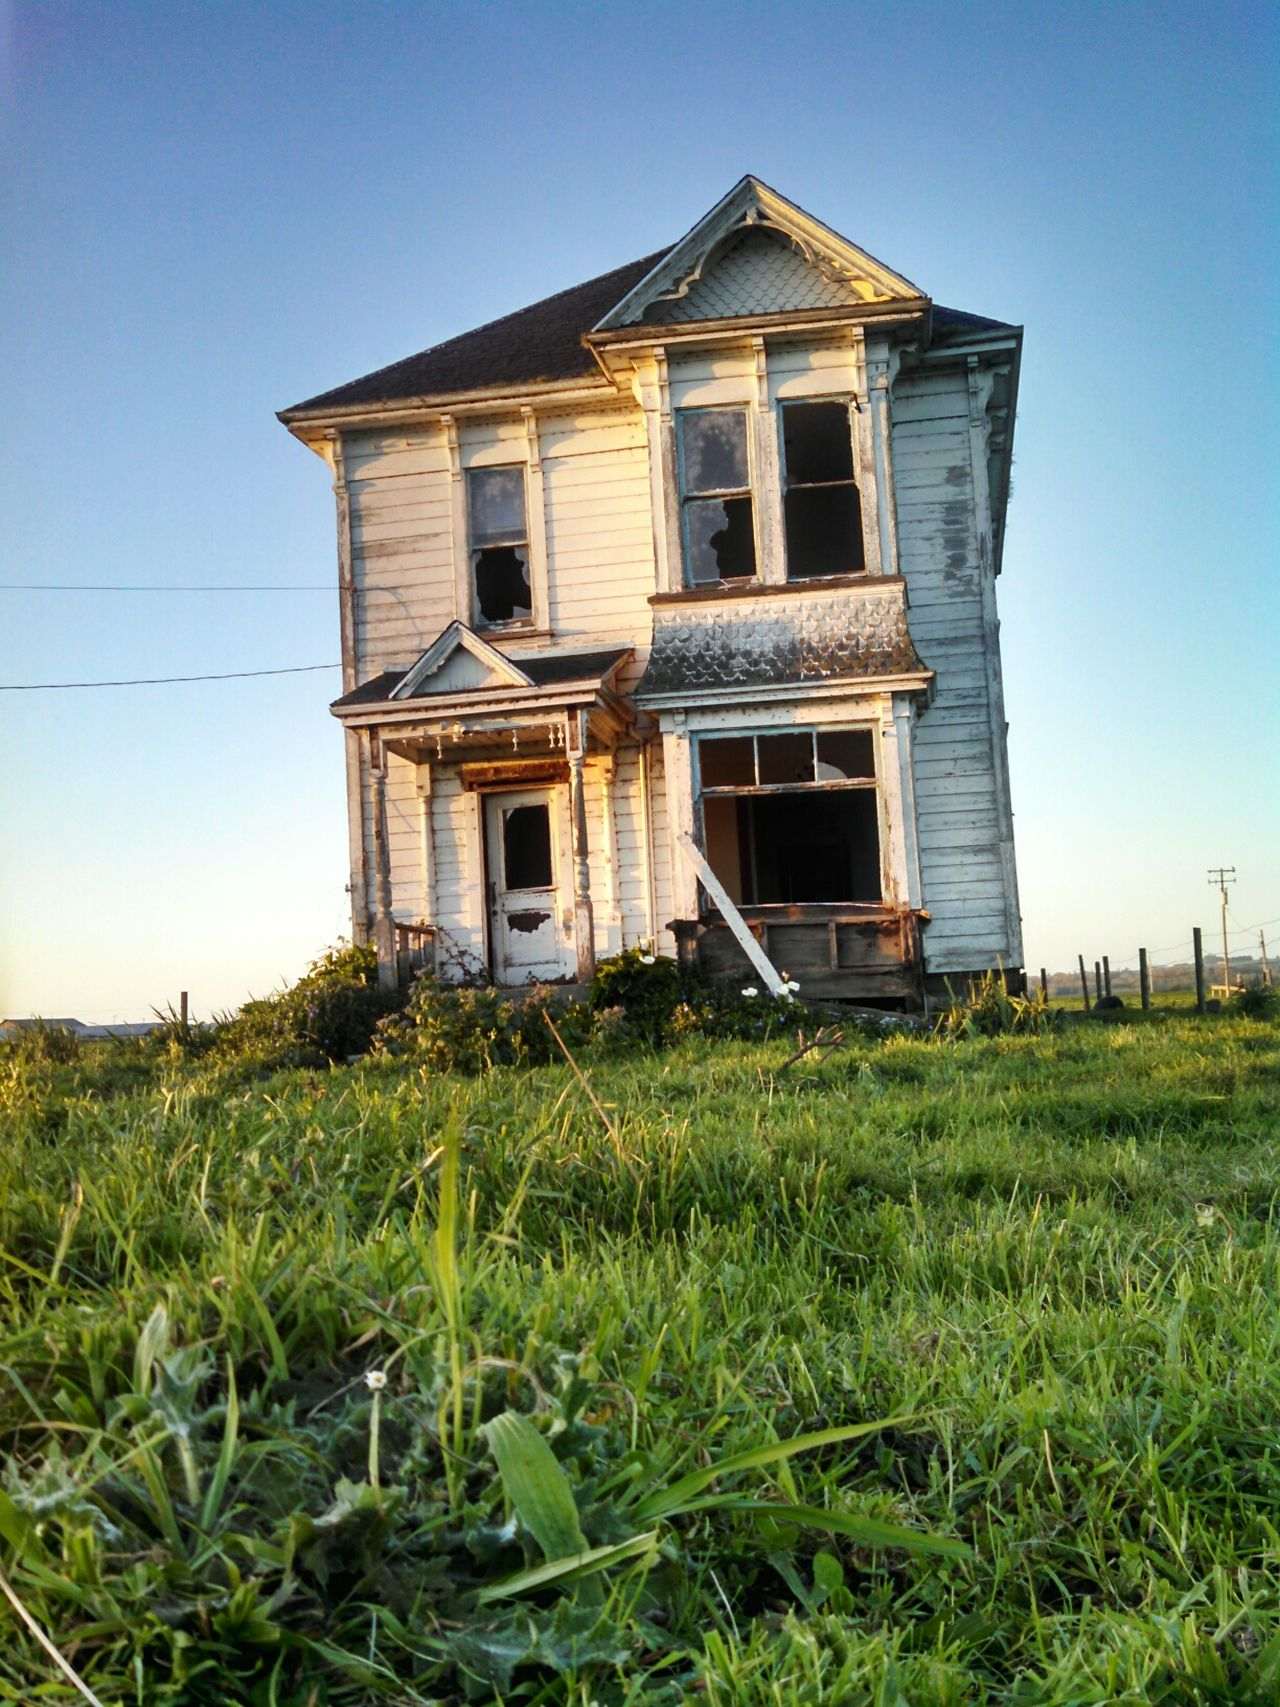 "In honor of this classic, that is no more Taking Photos Check This Out Enjoying Life Things I Like Exploring Mylife Run-down Abandoned Delipitated Abandoned Places Classic ""The Architect - 2015 EyeEm Awards Leftbehind Forgotten Oldfarmhouse Victorian Architecture Smartphonephotography Motorola Lobuephotos Eyemtravel Mobile Photography"